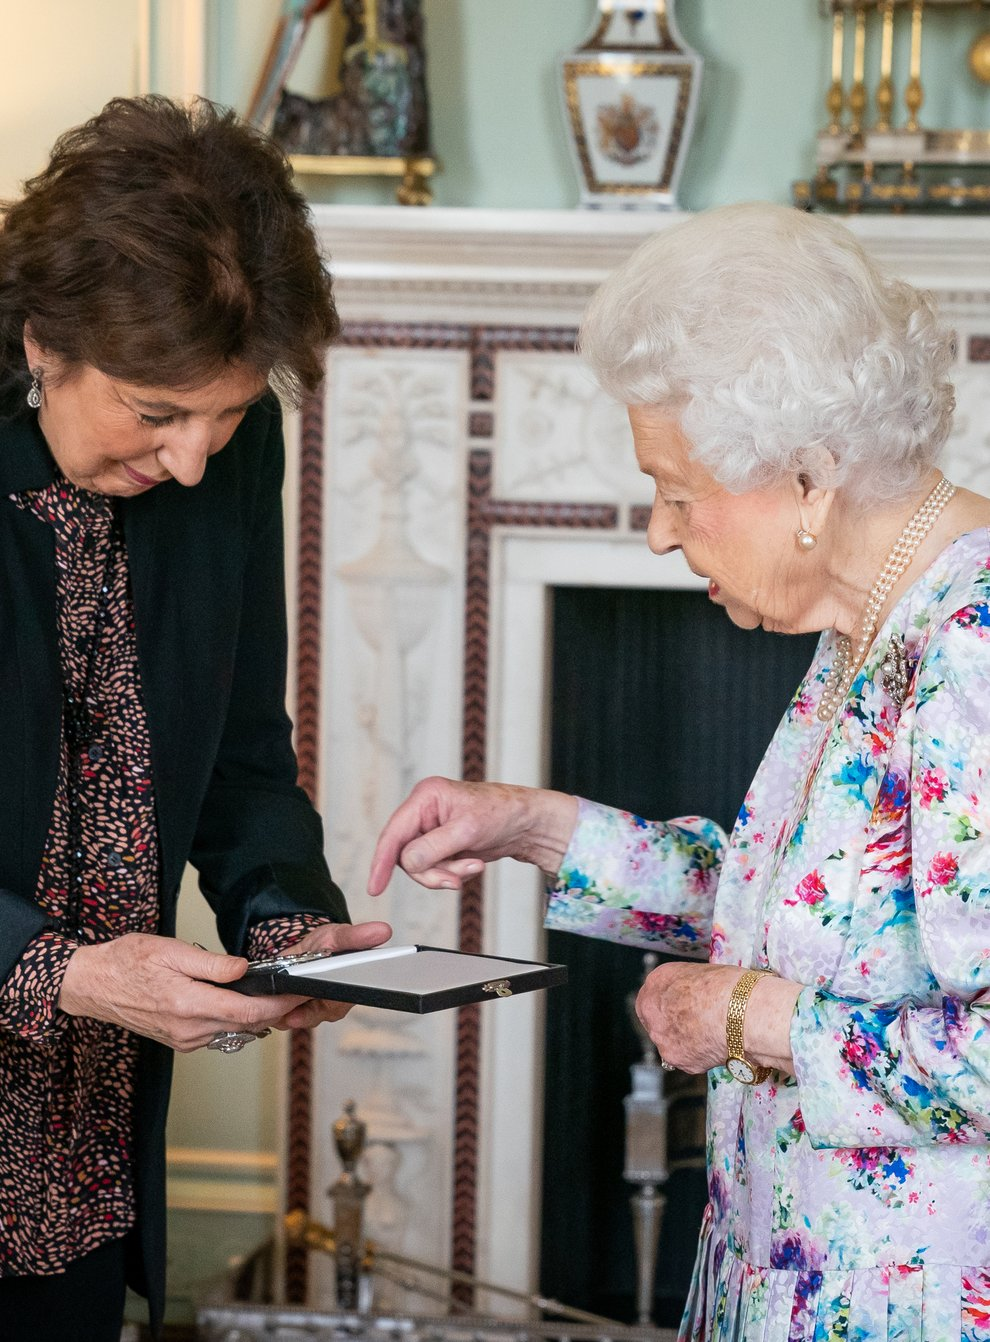 Dame Imogen Cooper has been presented with the Queen's Medal for Music at Buckingham Palace (Aaron Chown/PA)